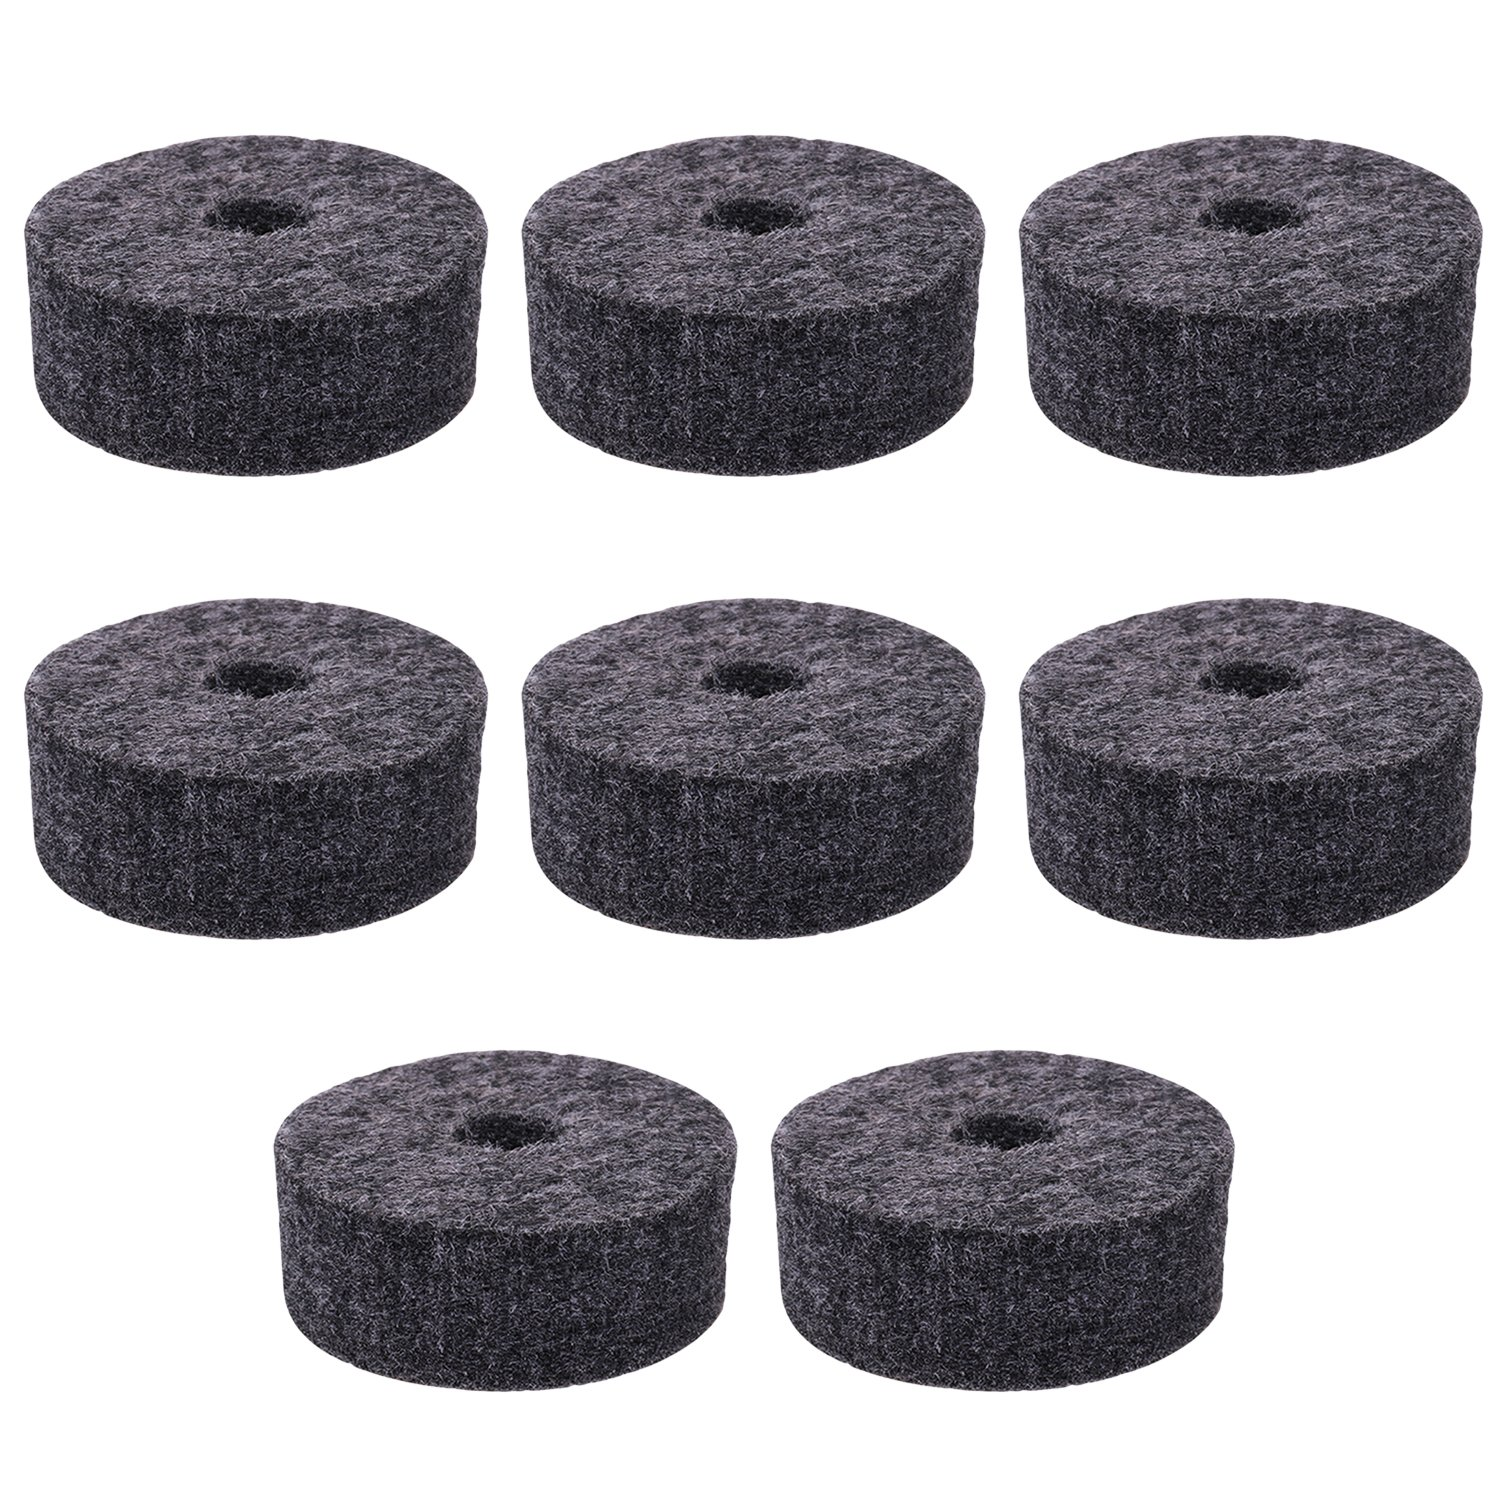 Round Soft Grey Cymbal Stand Felt Washer Replacement for Drum Set of 8 Sunflower music